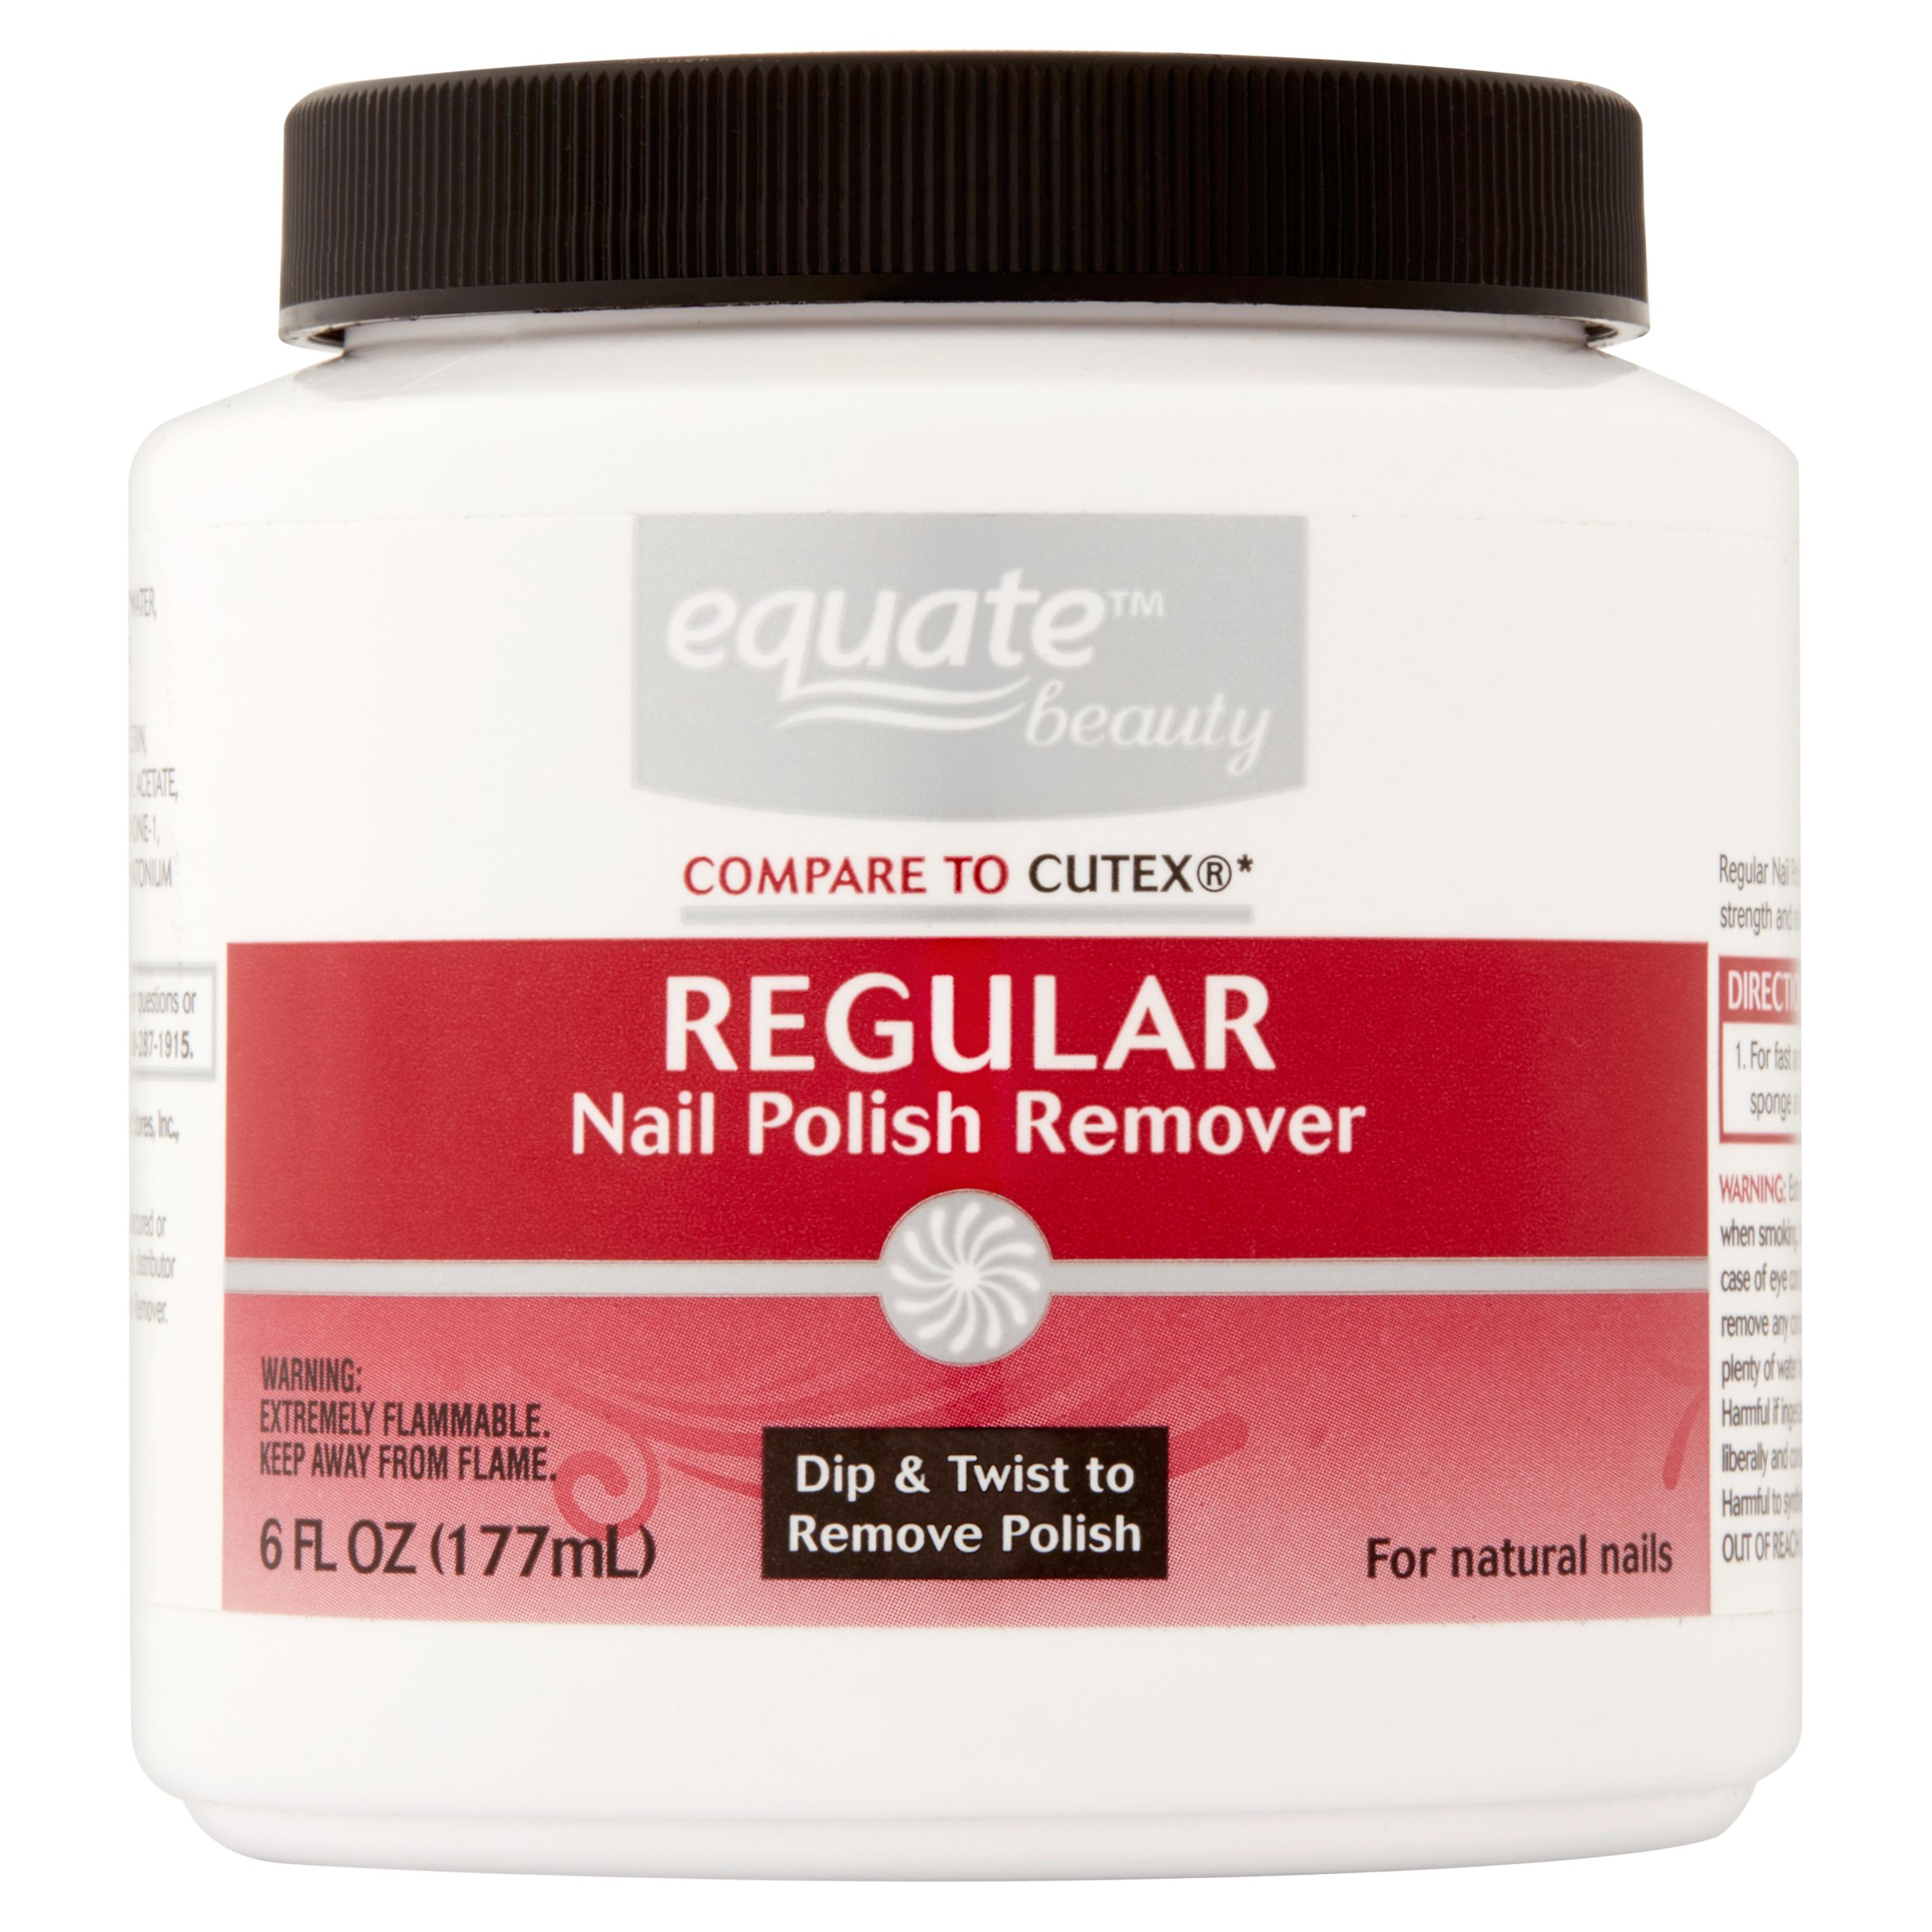 Equate Regular Nail Polish Remover, 6 Oz